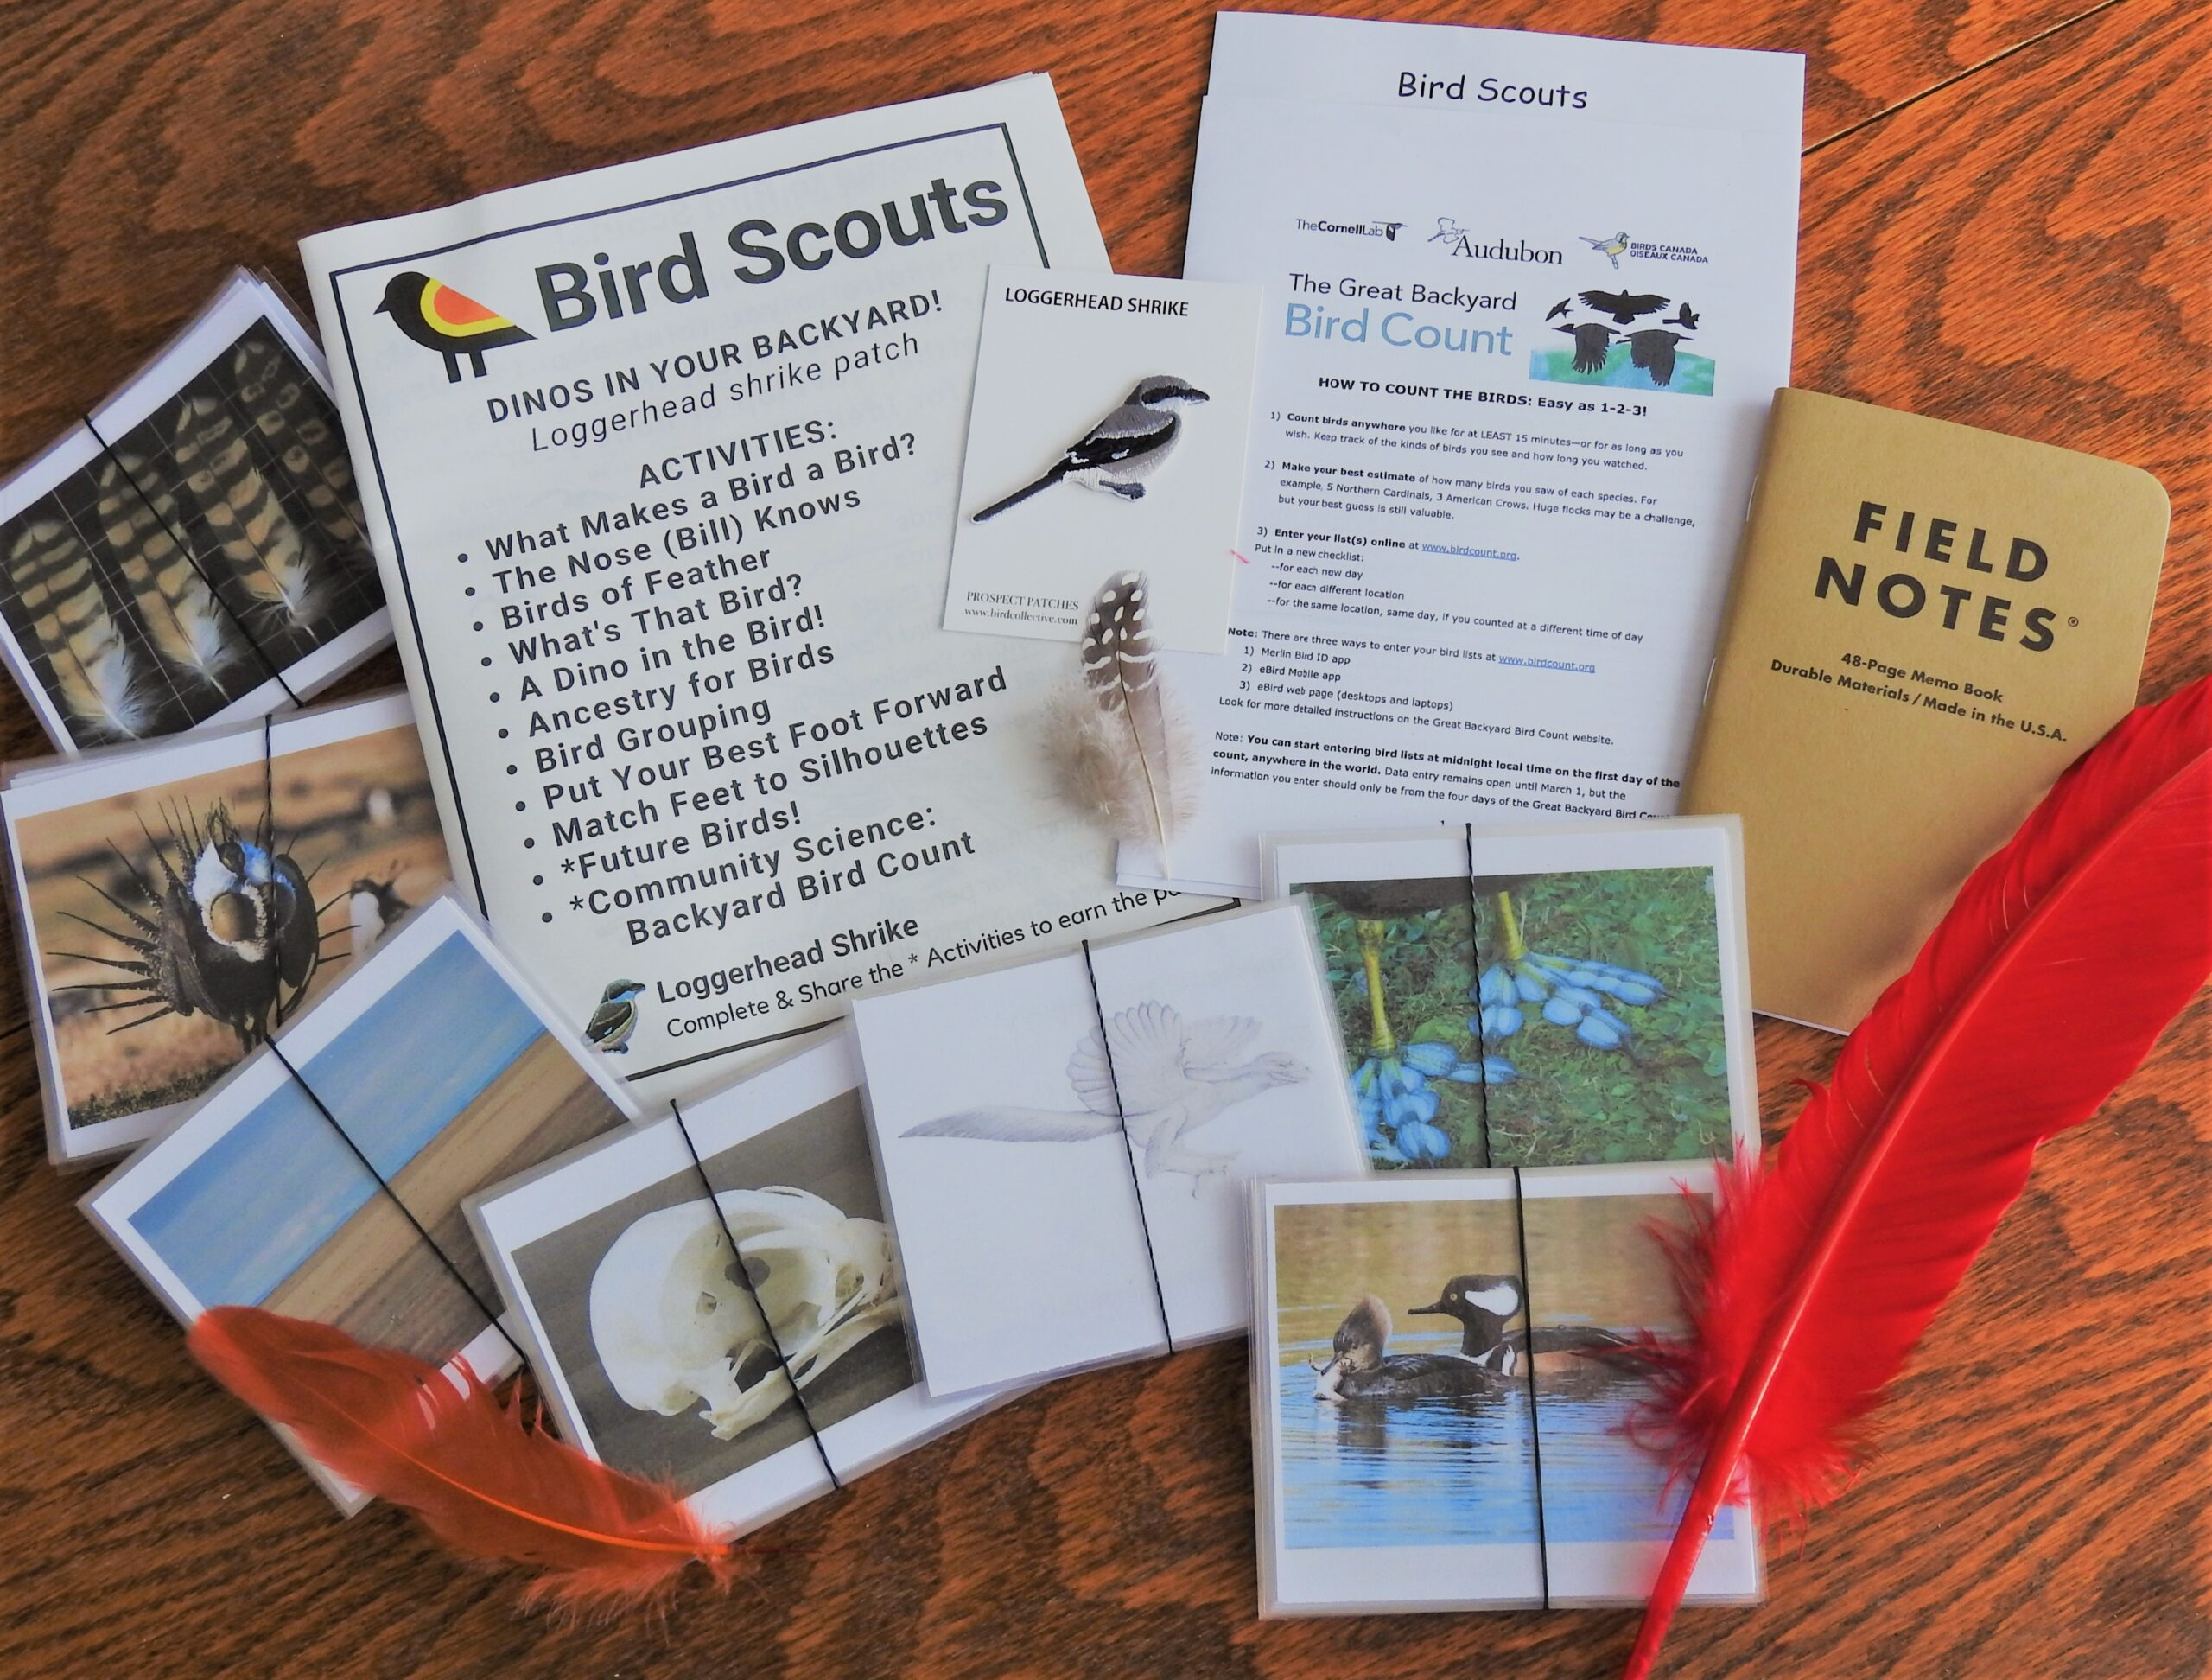 Dinos in your backyard activity packet includes booklets, feathers, and several sets of ID flashcardscards.